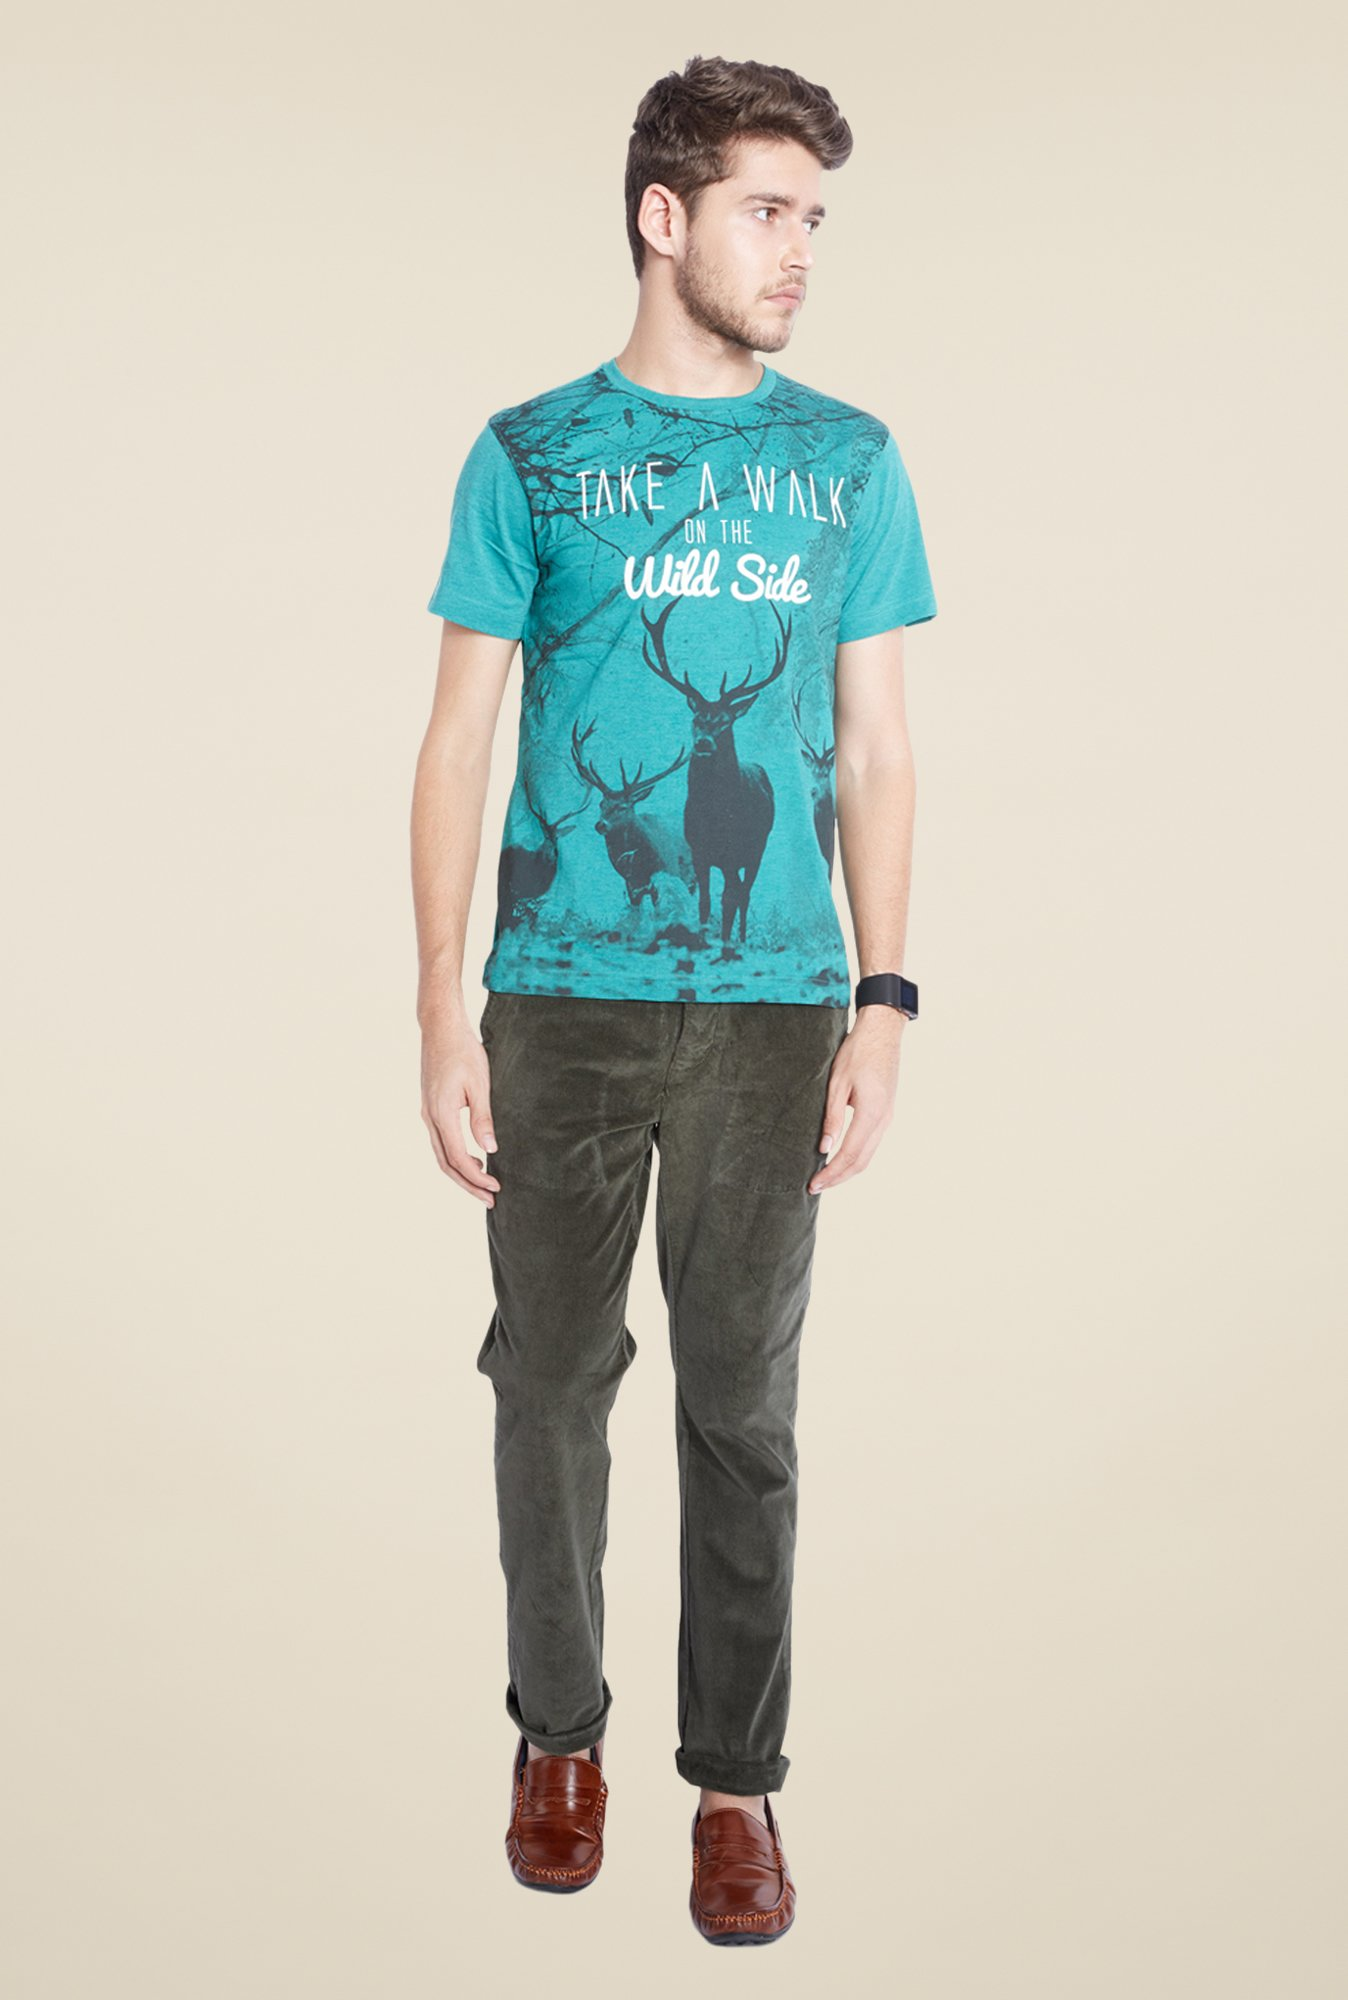 Parx Turquoise Graphic Printed Crew Neck T Shirt